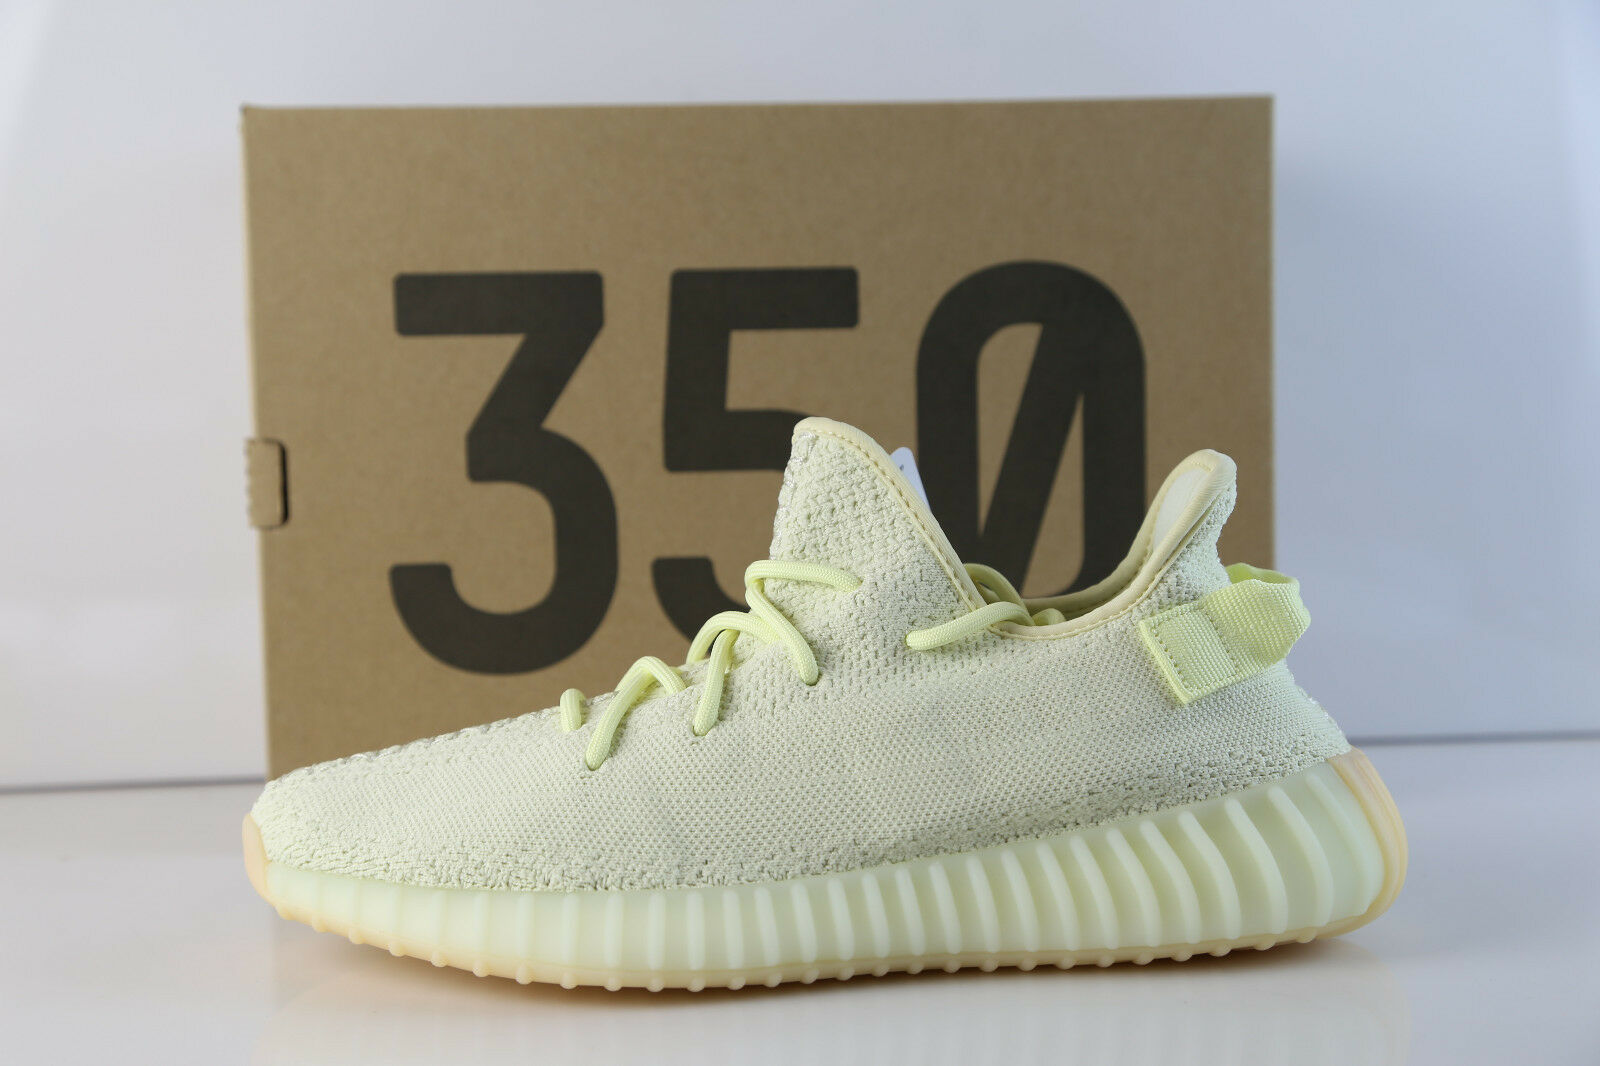 Adidas Yeezy Boost Kanye West 350 V2 Butter F36980 5-13 boost pk yzy